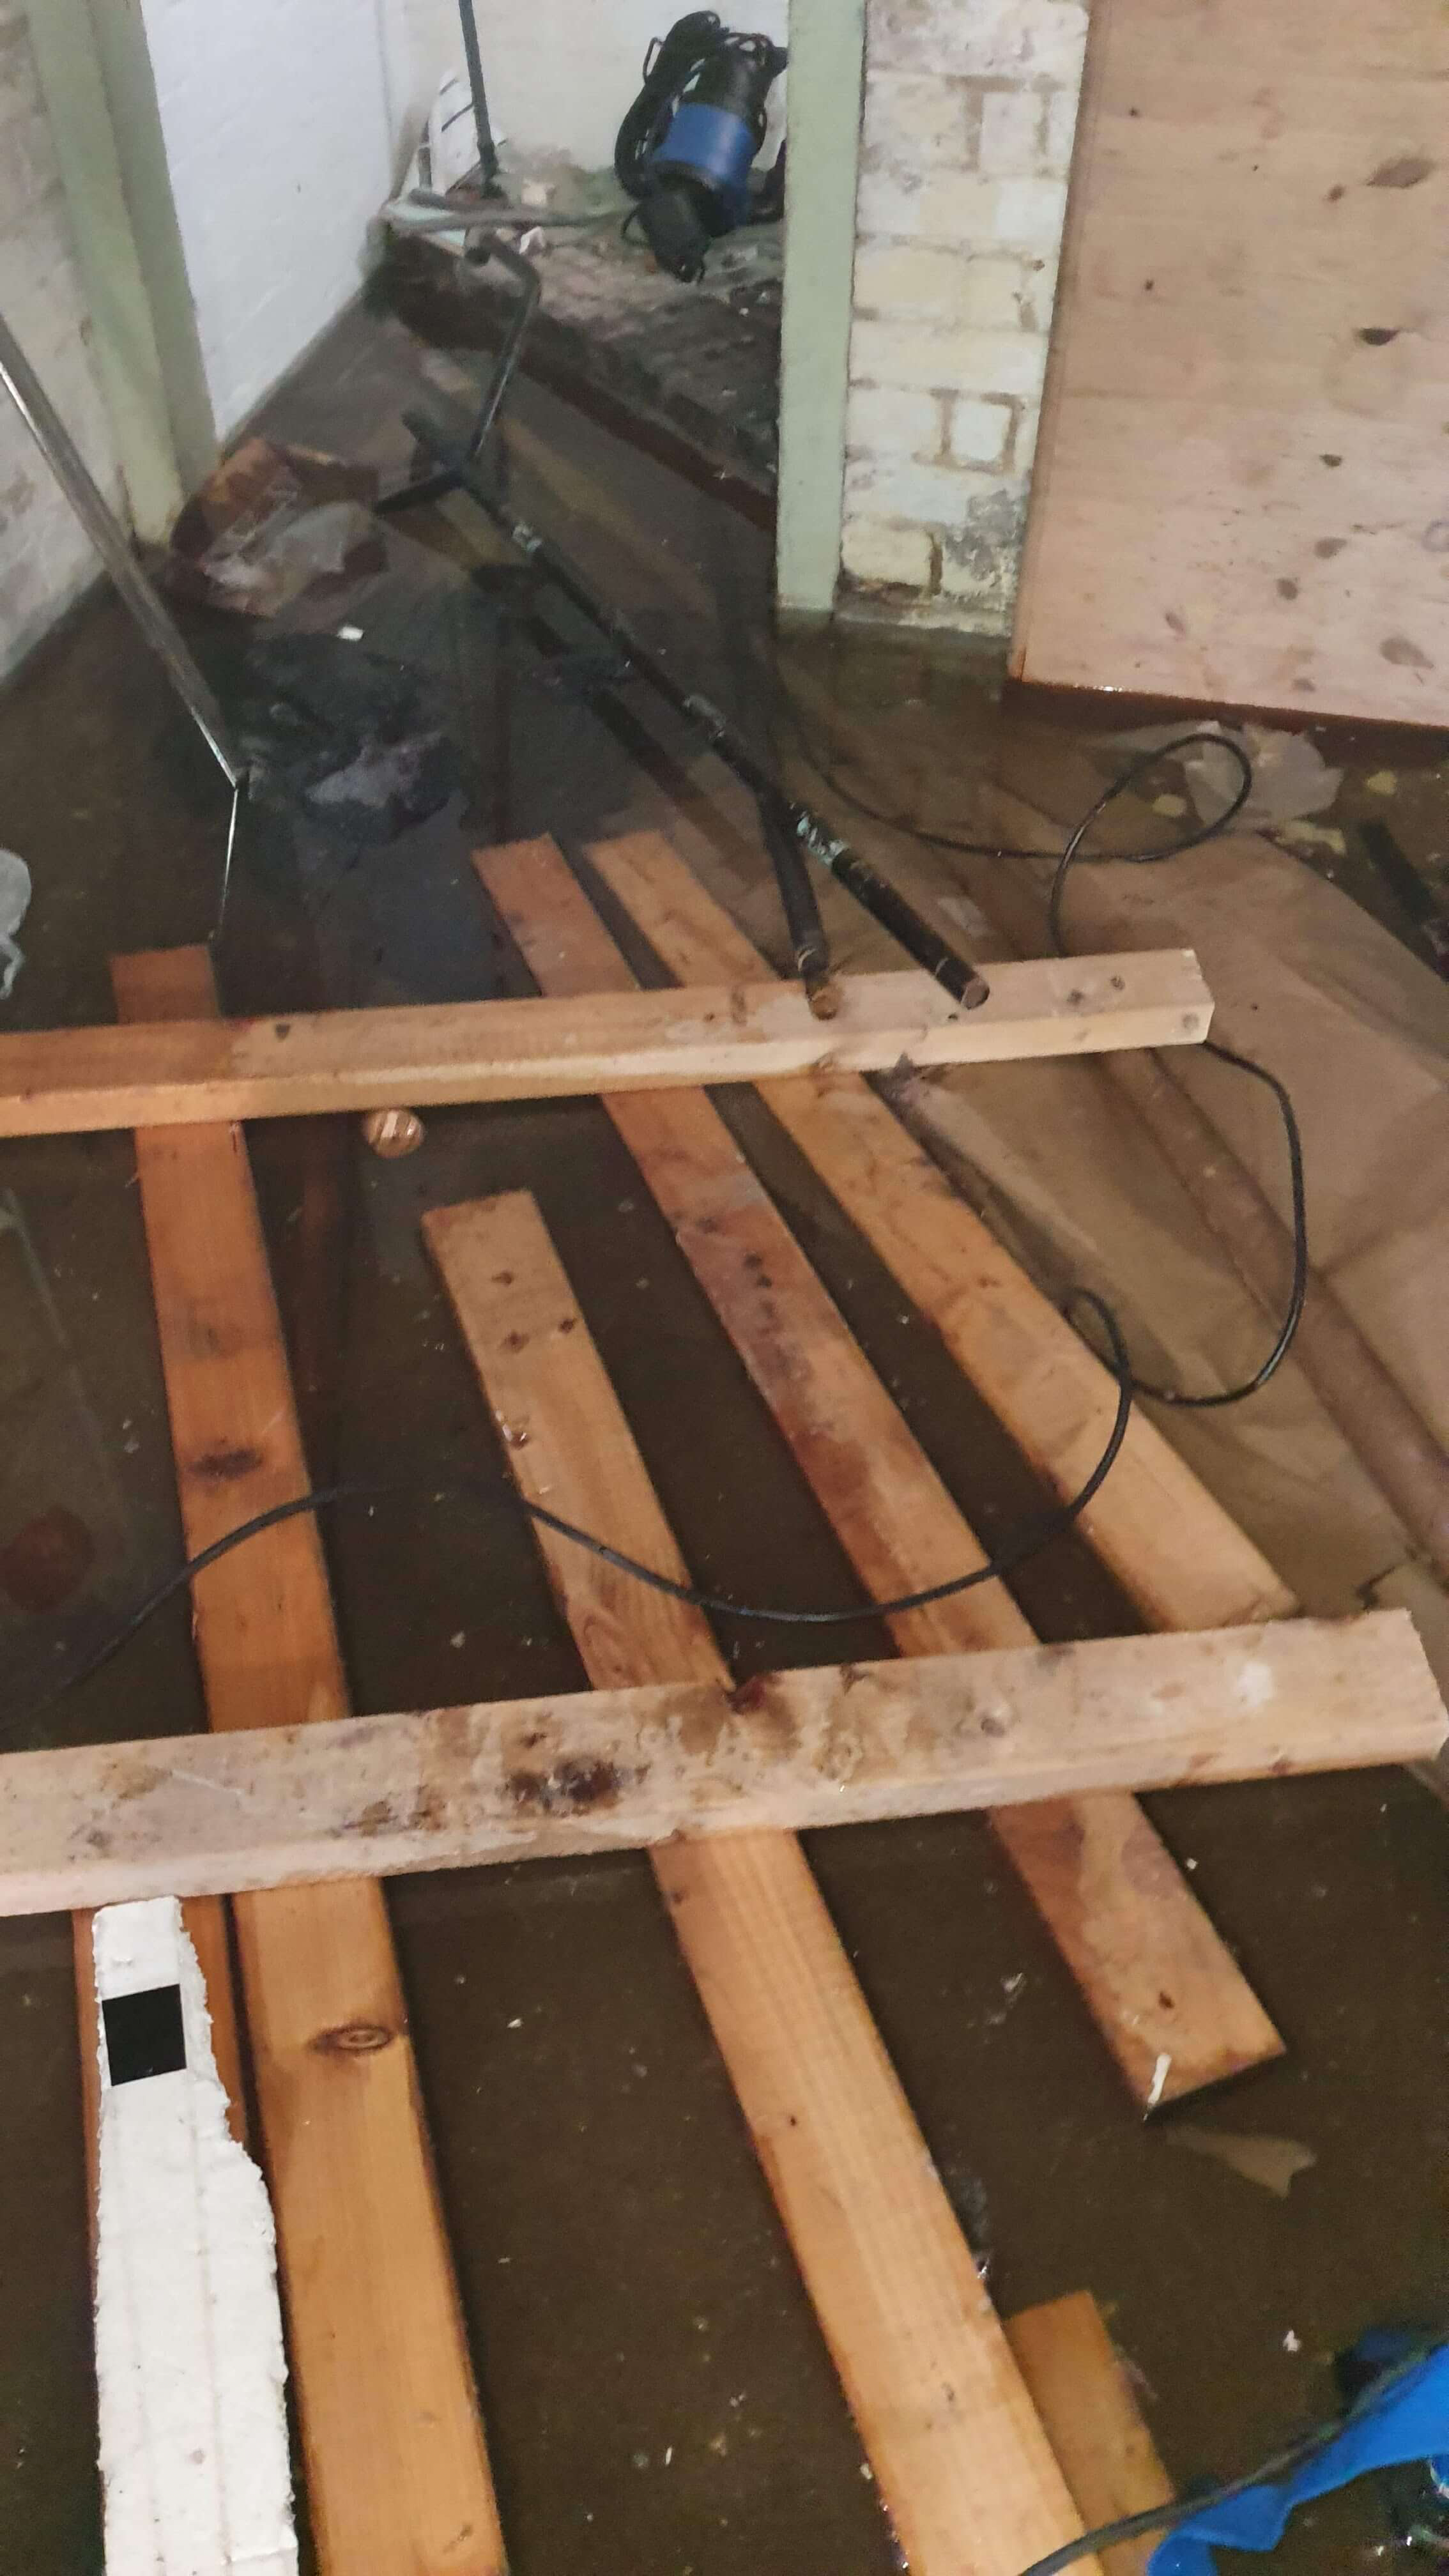 Flooded basement at residential property with water damaged property